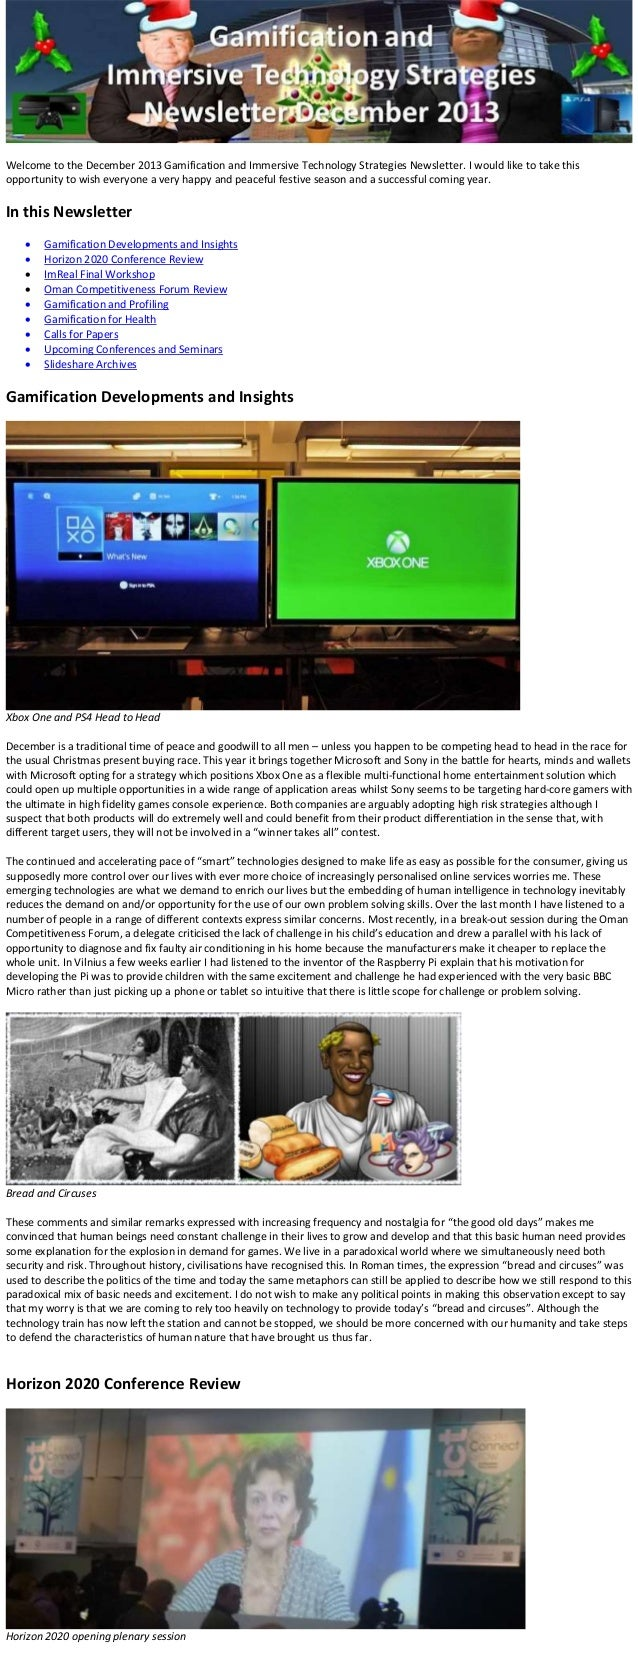 Dec 2013 Gamification and Immersive Technology Strategies E newsletter